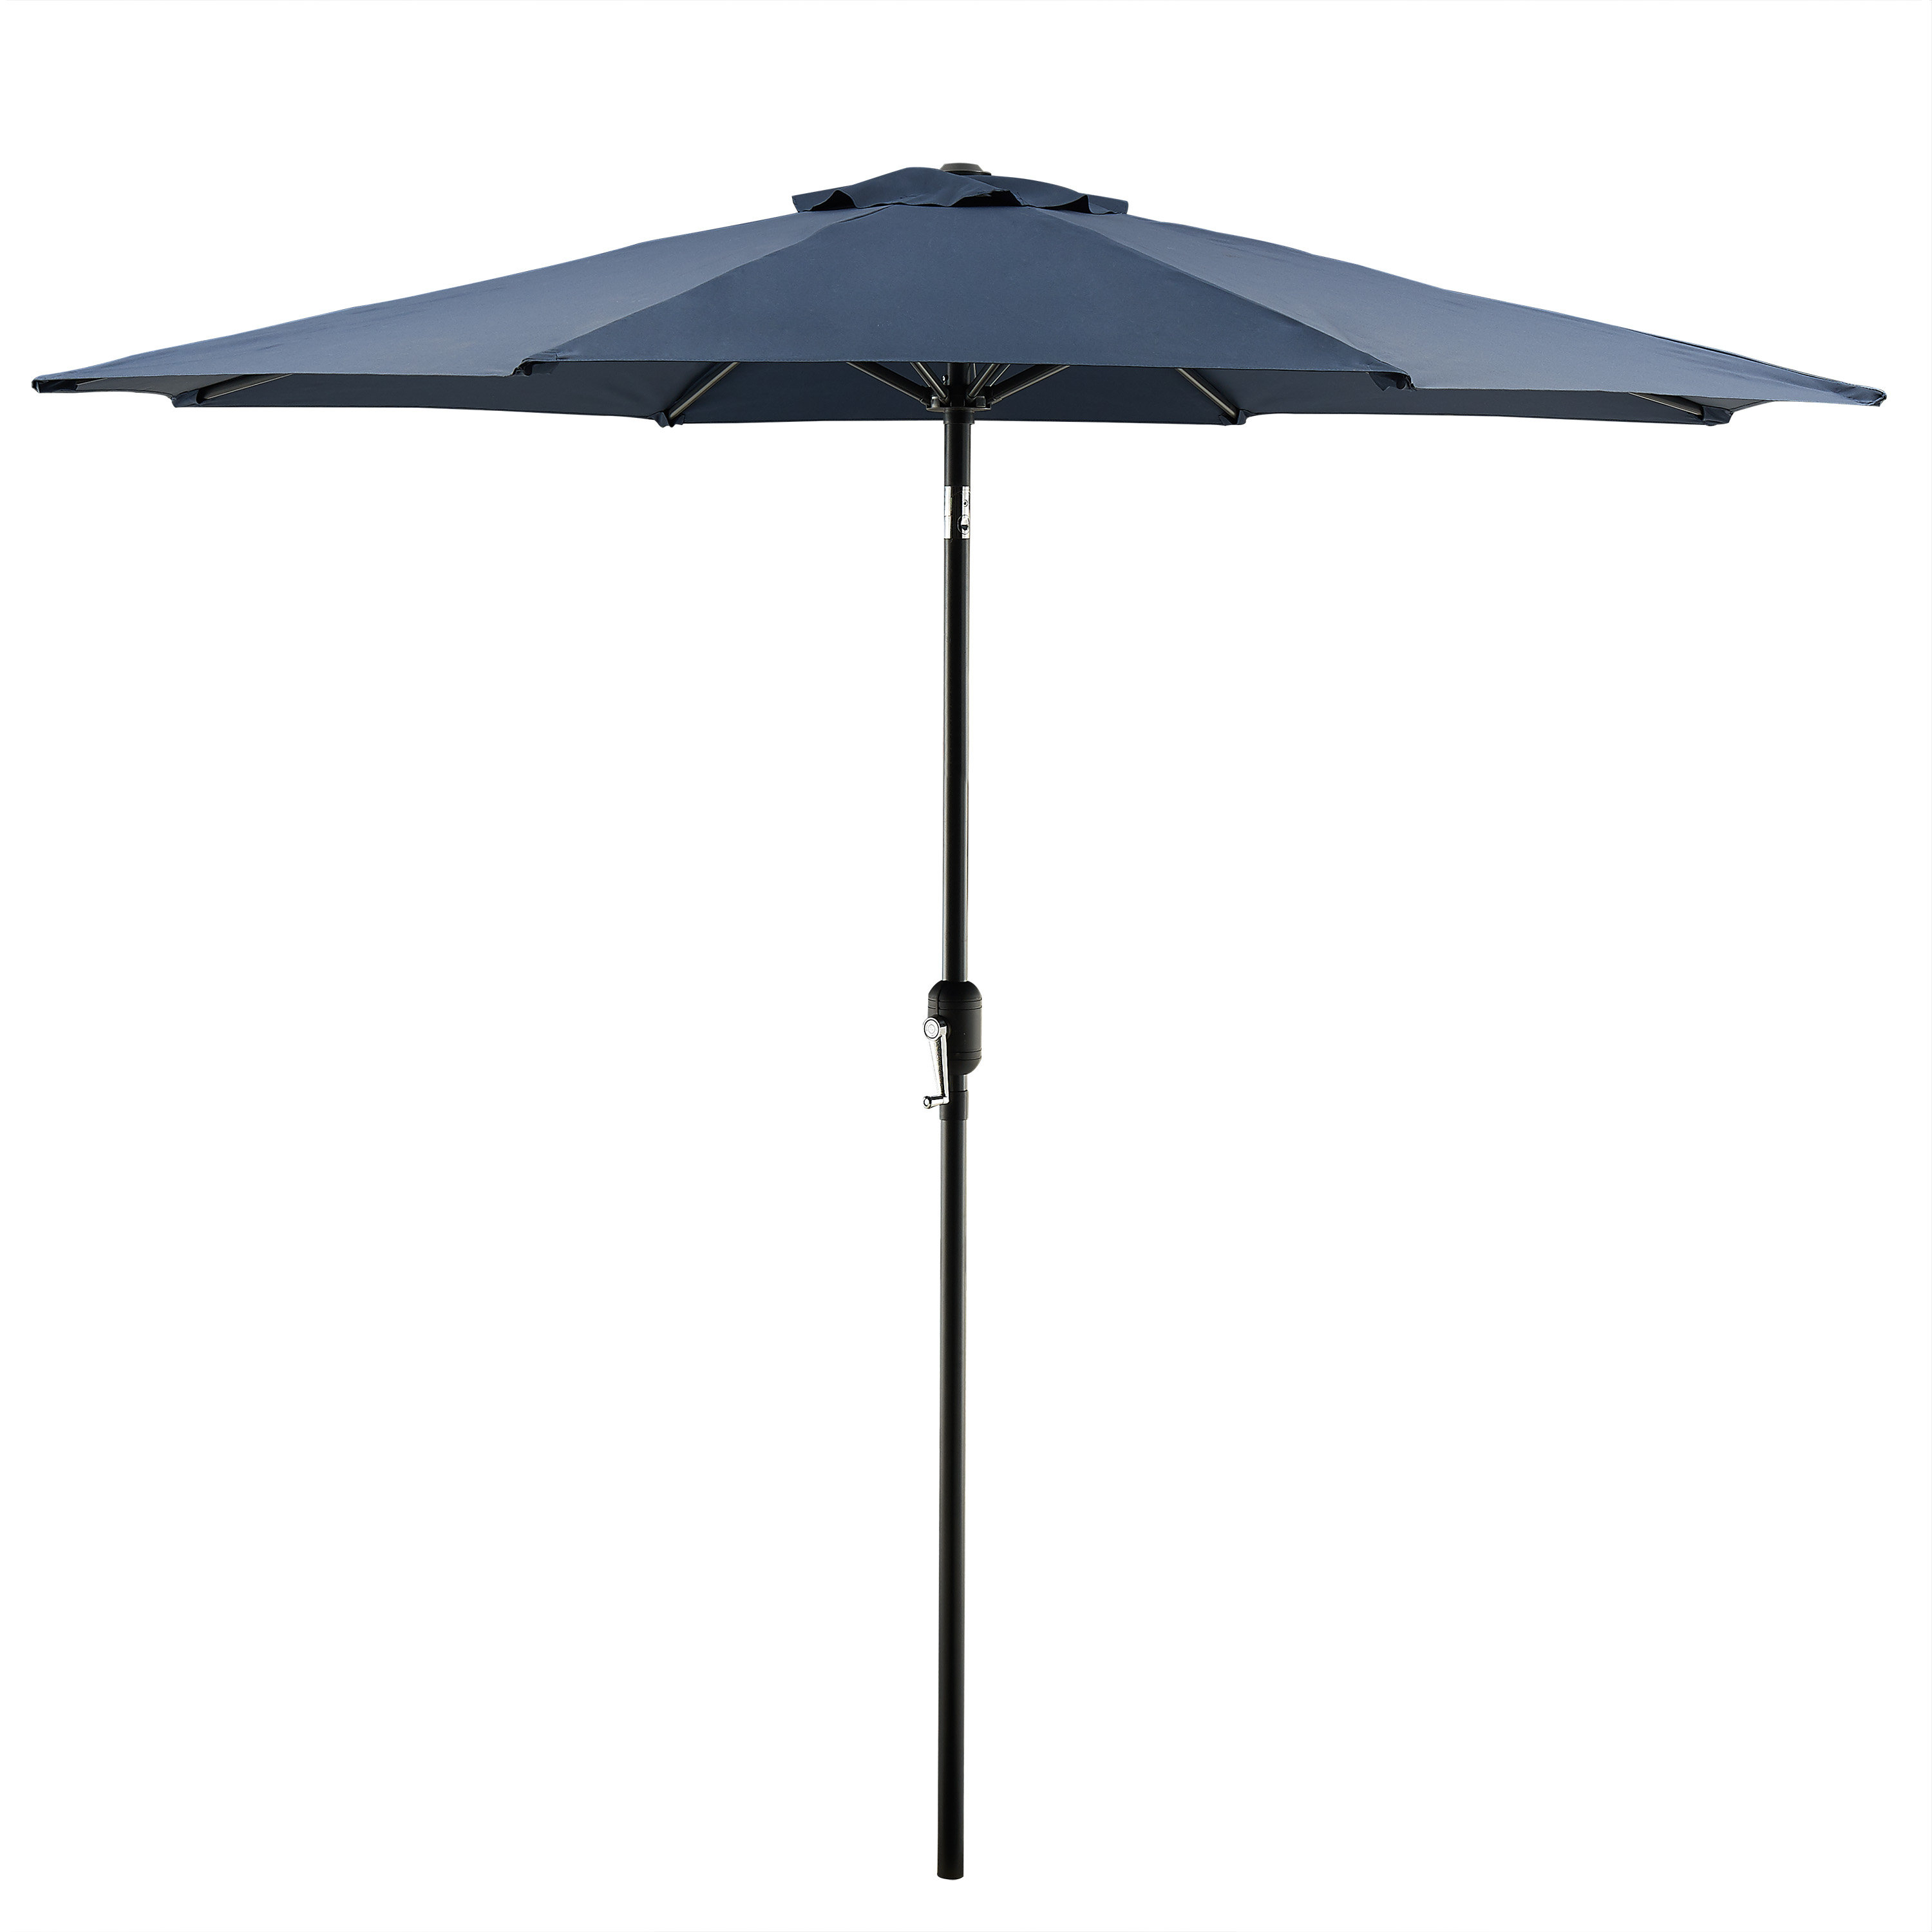 Hapeville 9' Market Umbrella Throughout Best And Newest Hapeville Market Umbrellas (Gallery 2 of 20)